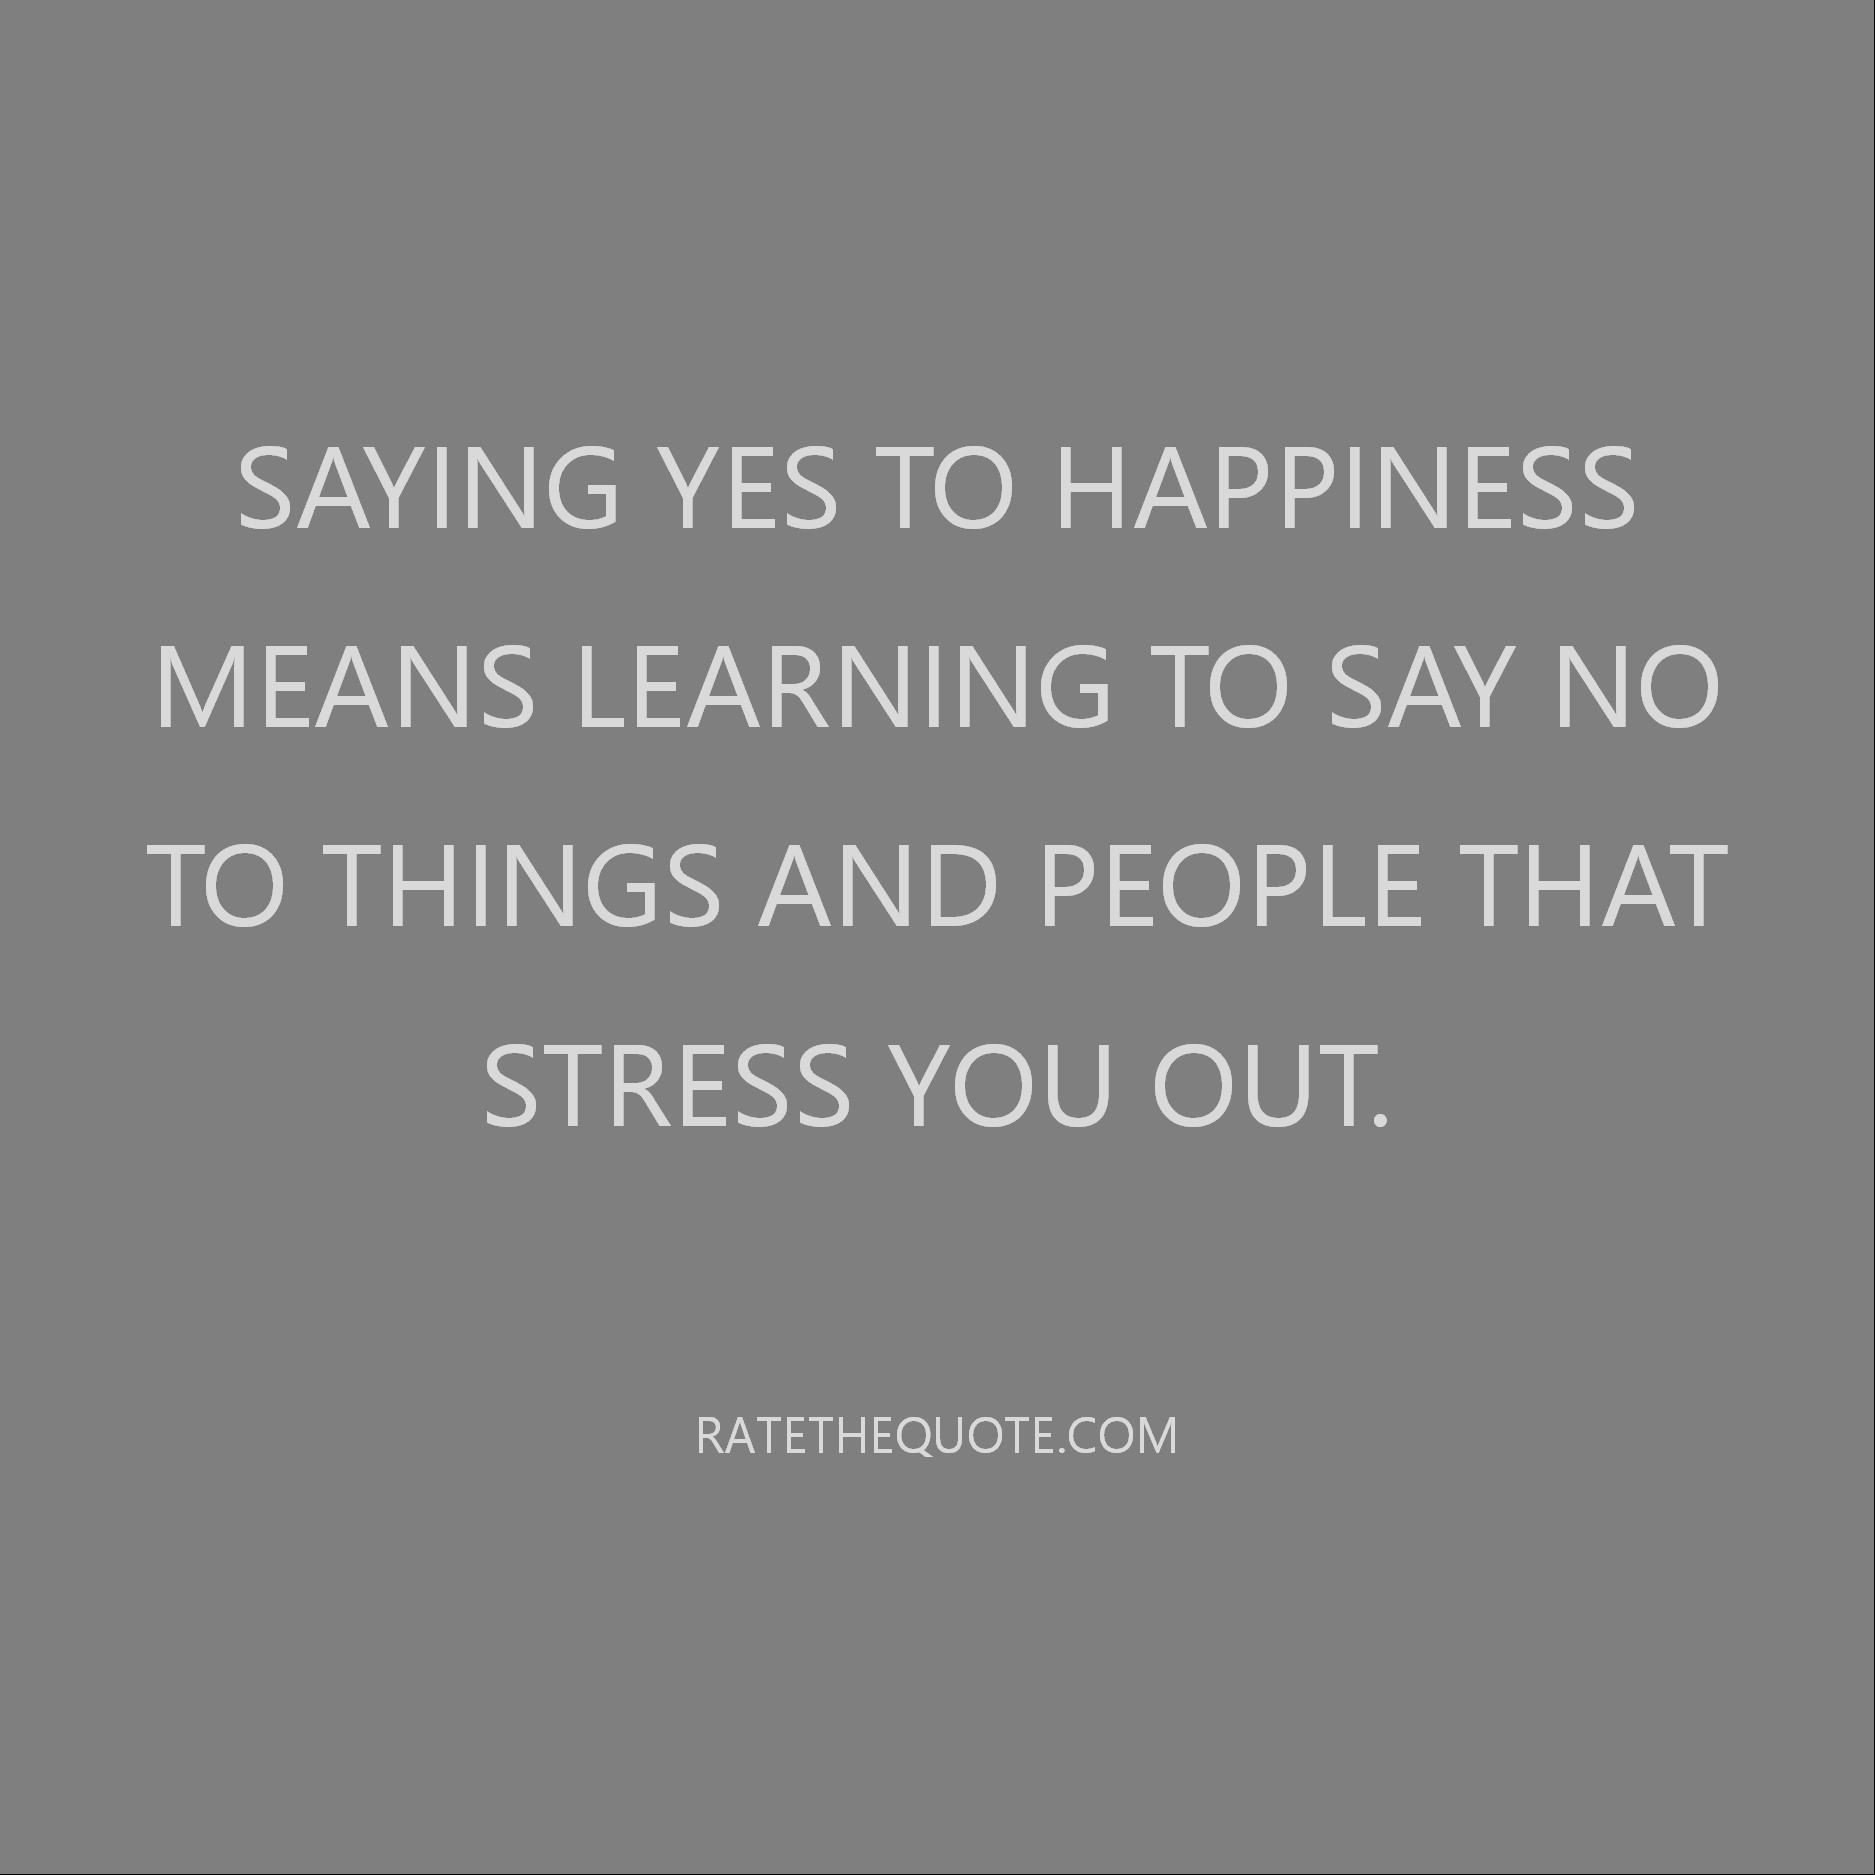 Quote Saying yes to happiness means learning to say no to things and people that stress you out.